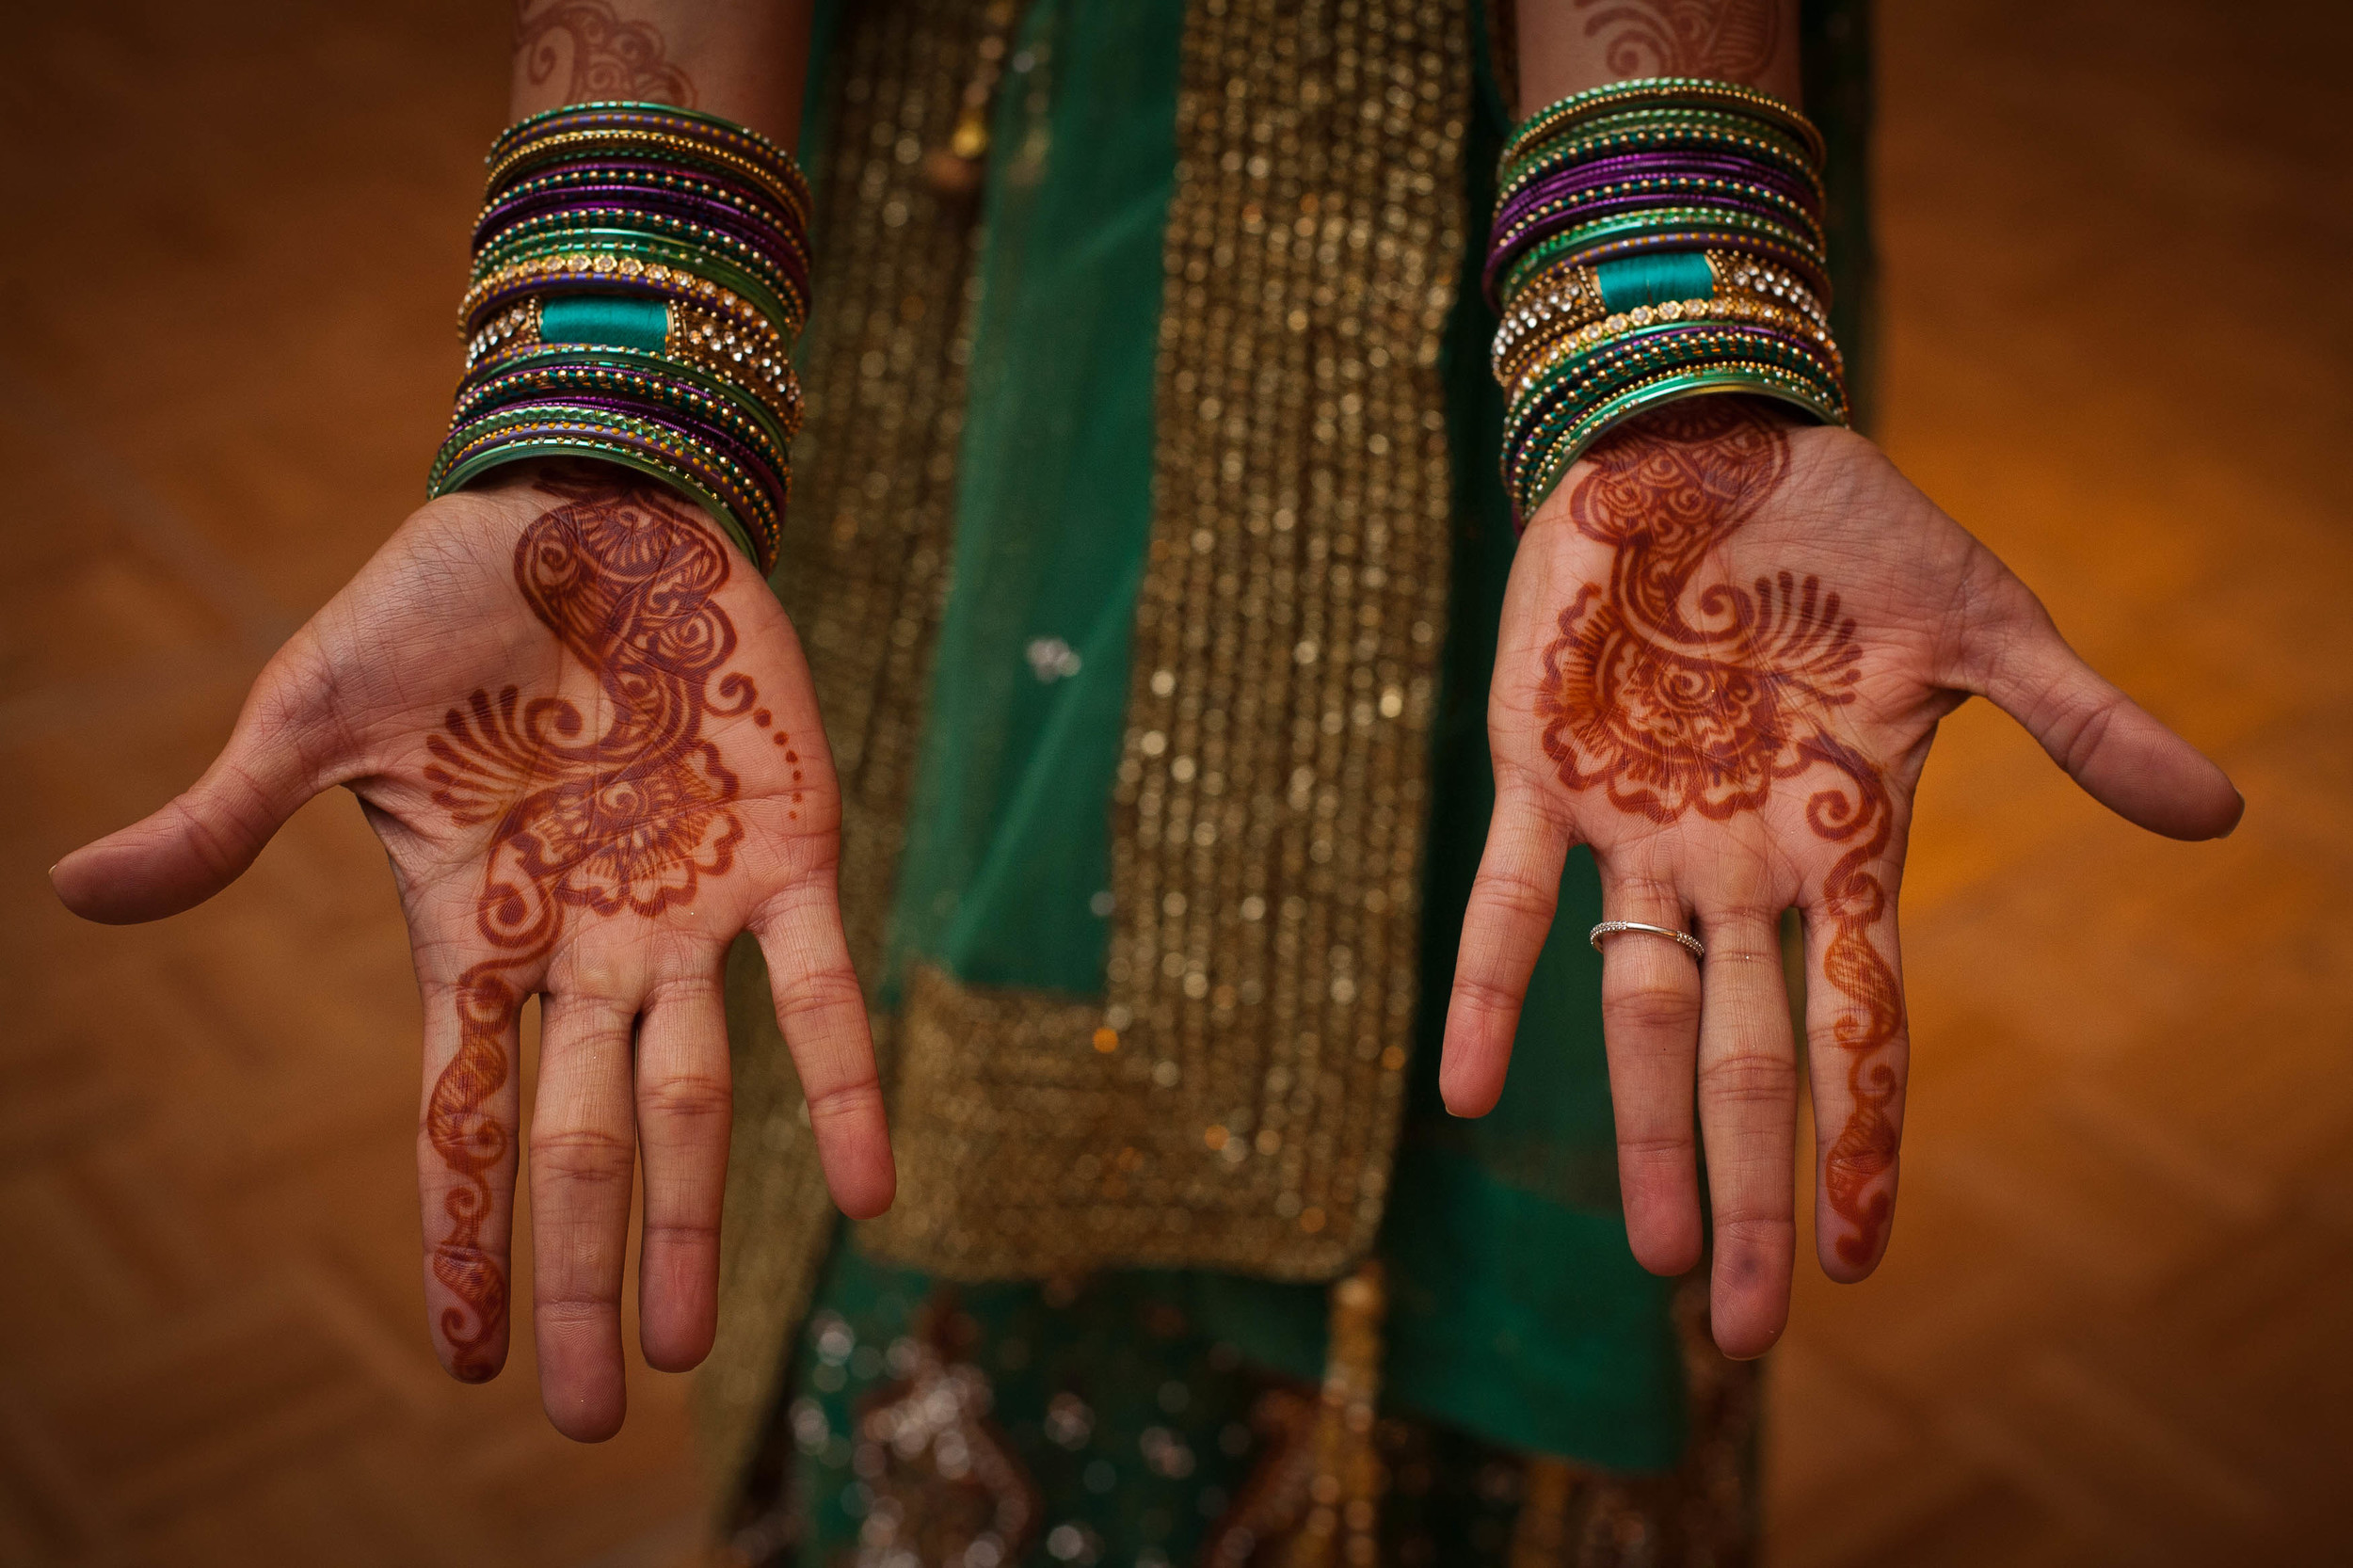 Aditi had BEAUTIFUL henna - and the party had henna stations where the guests could get temporarily inked, too!